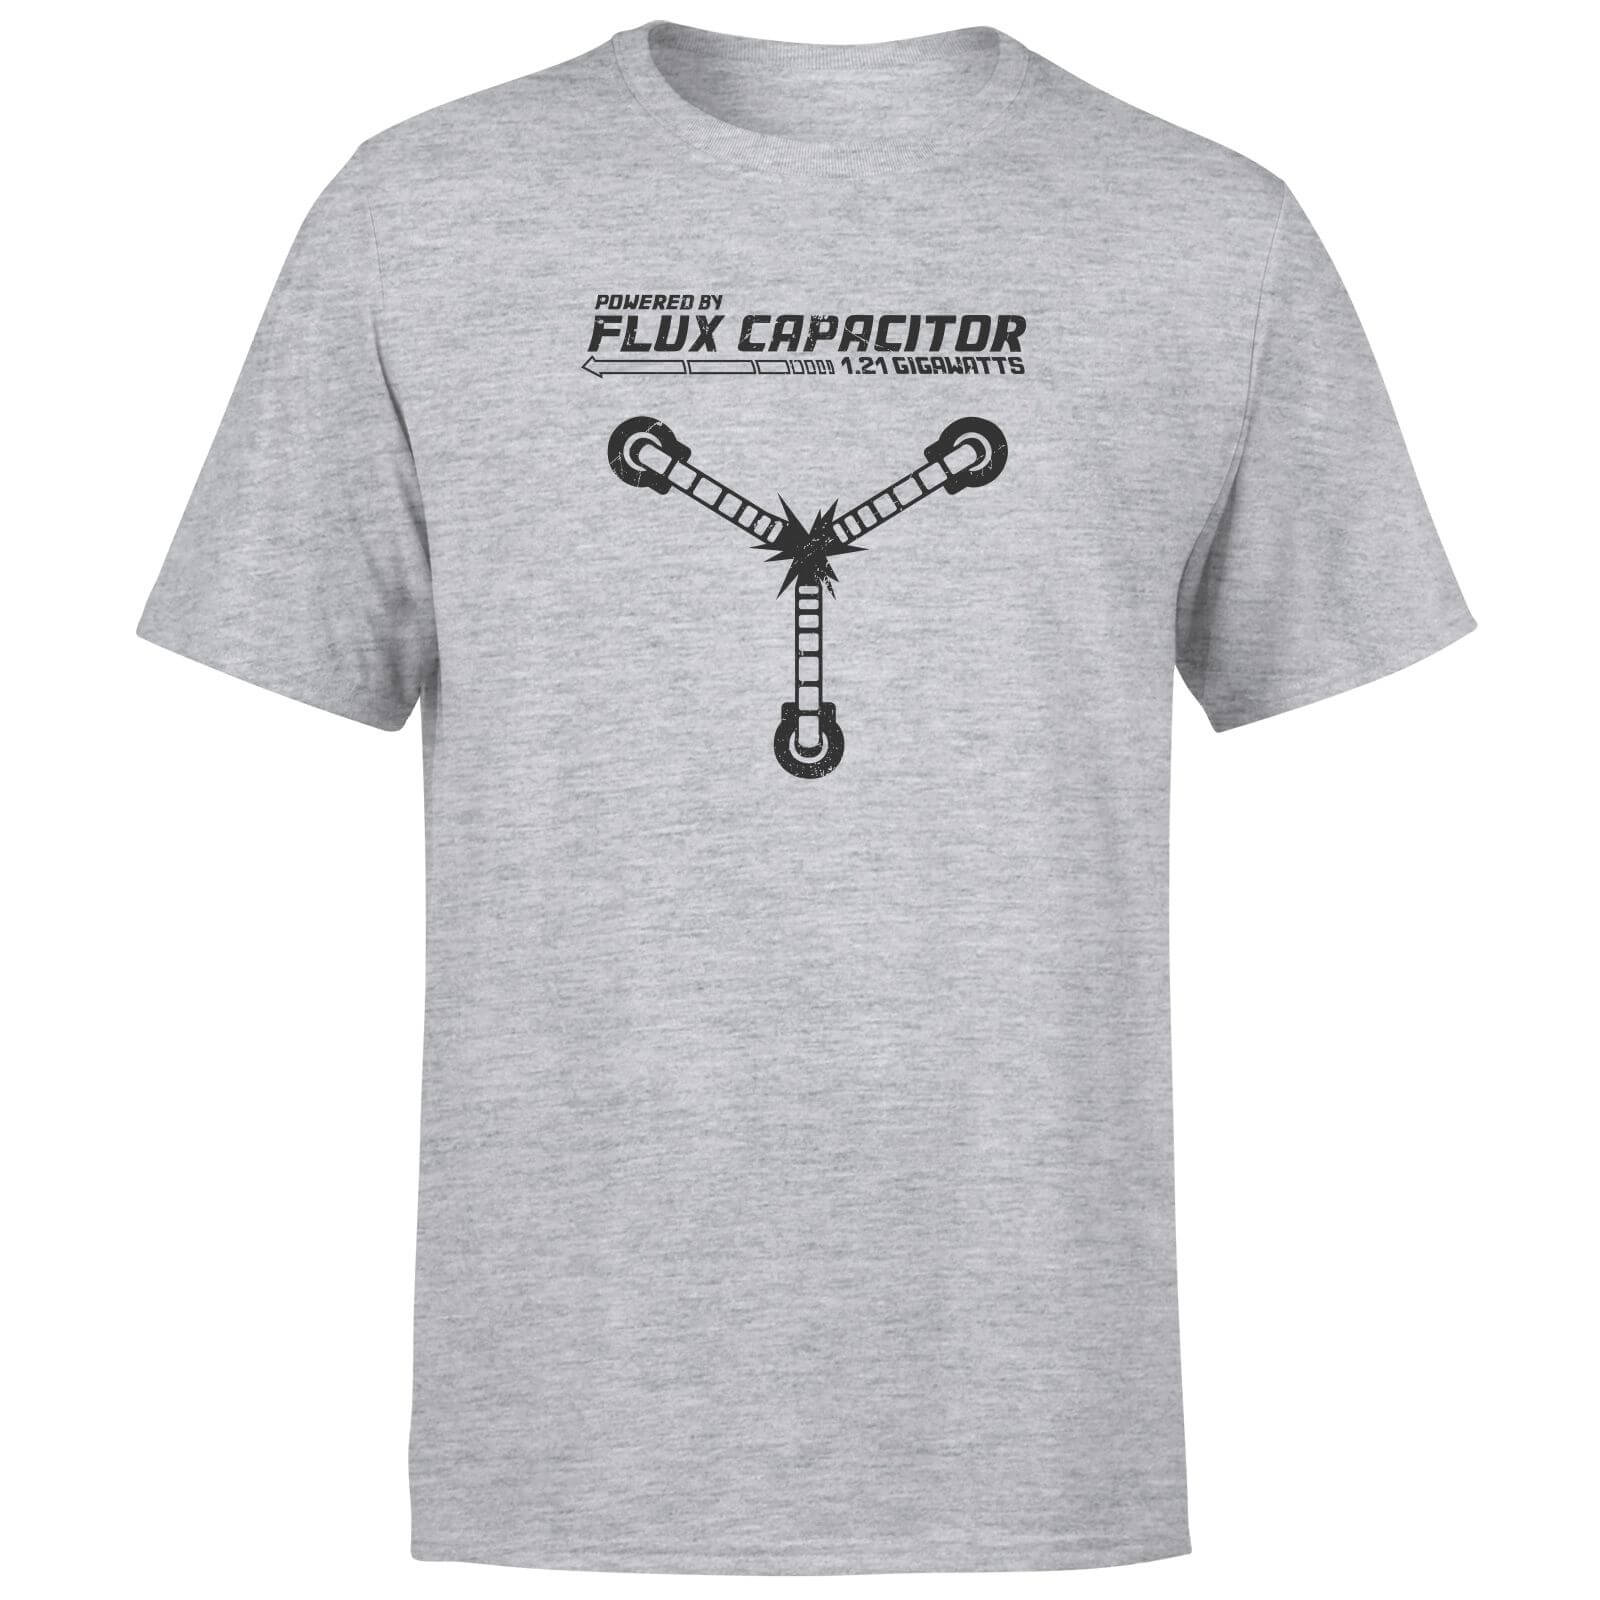 Back To The Future Powered By Flux Capacitor T-Shirt - Grey